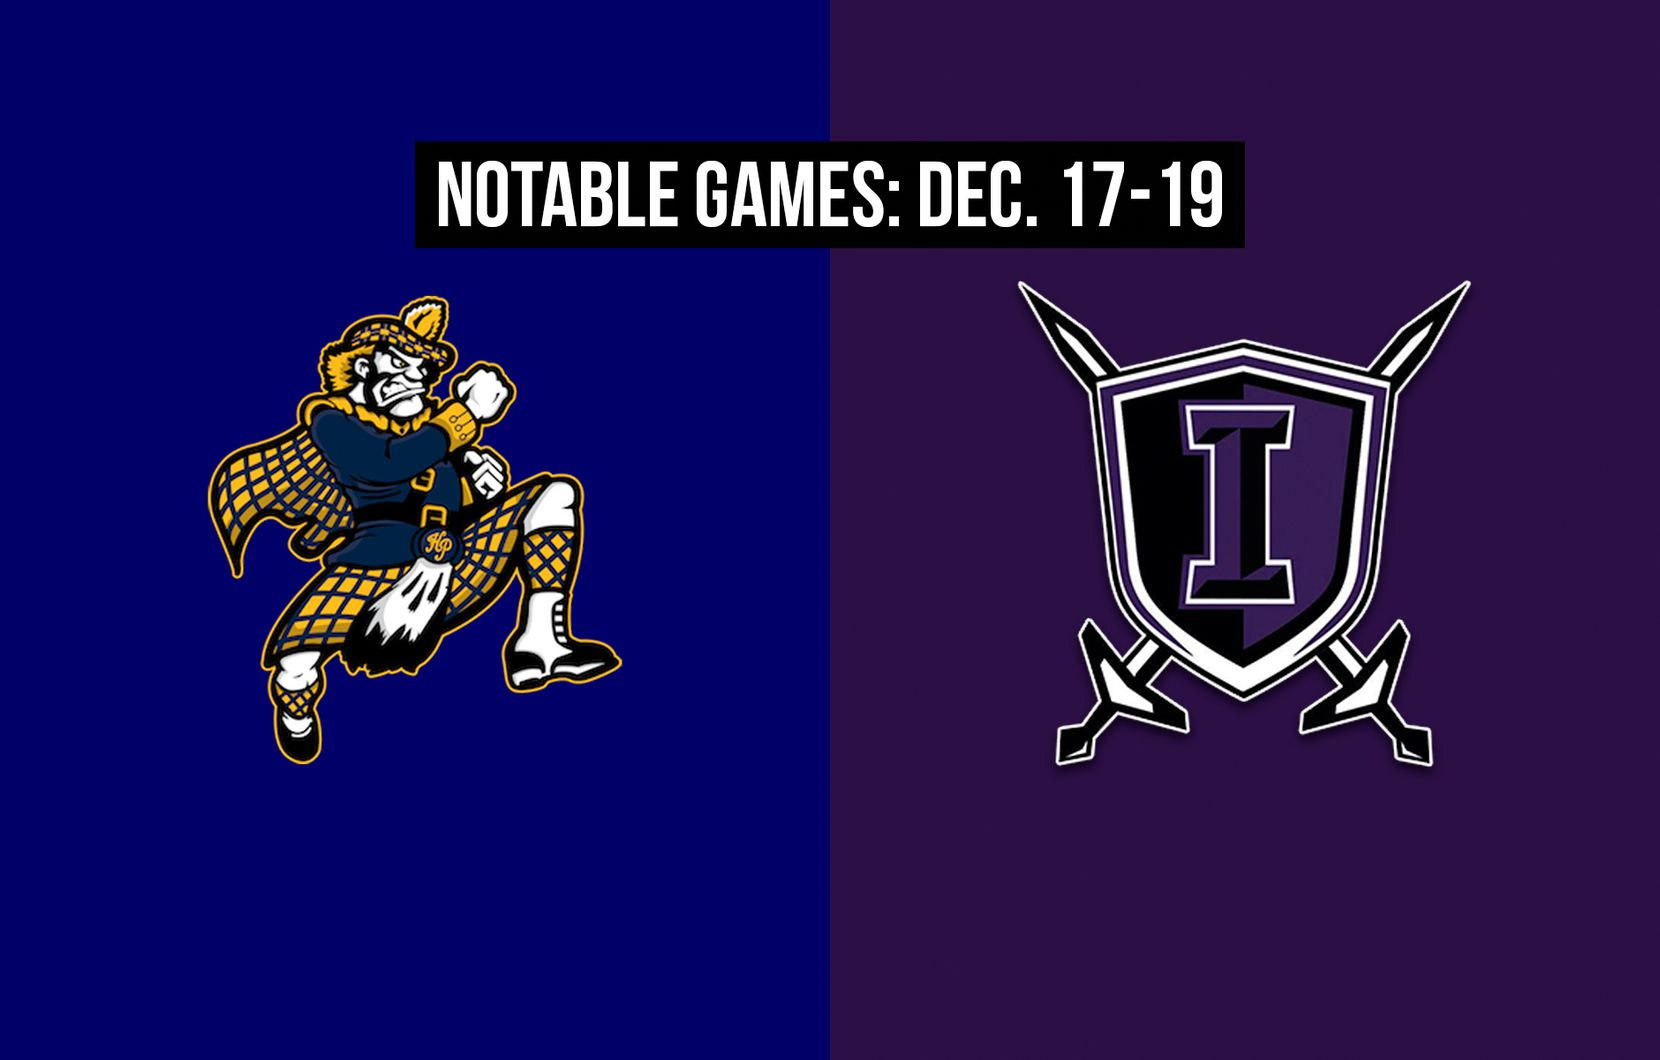 Notable games for the week of Dec. 17-19 of the 2020 season: Highland Park vs. Frisco Independence.